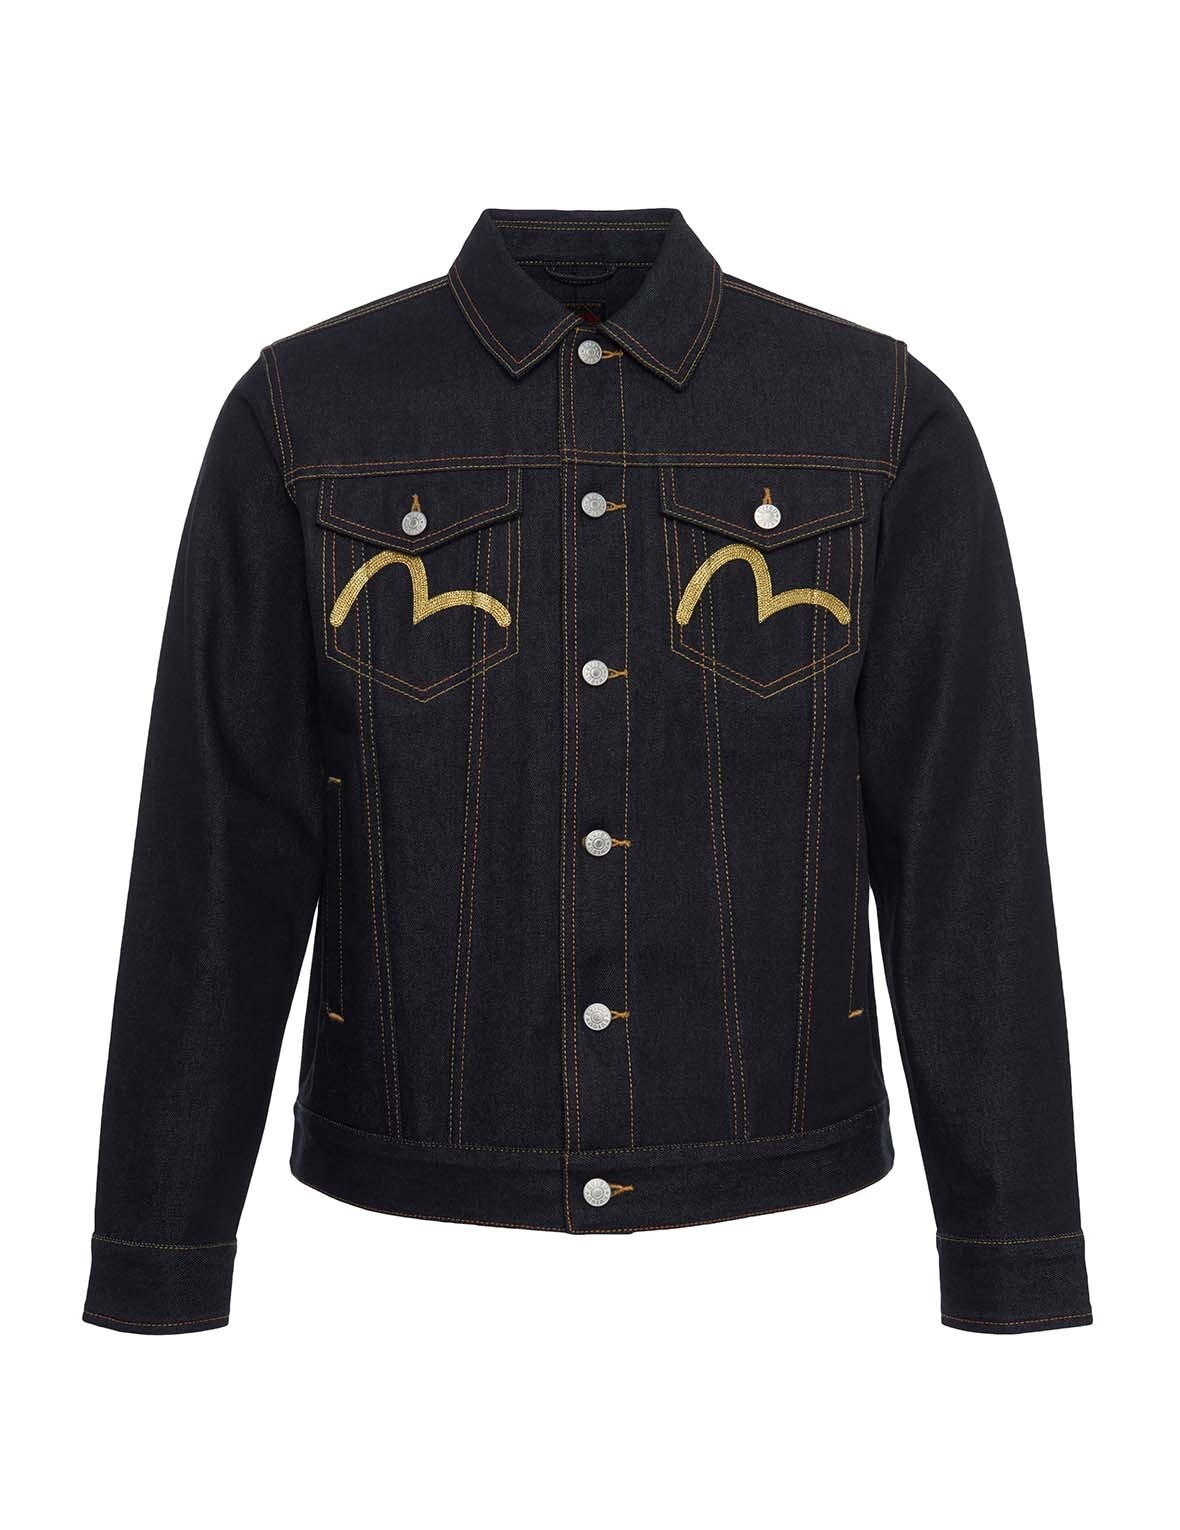 EVISU Dragon Head Embroidered Denim Jacket